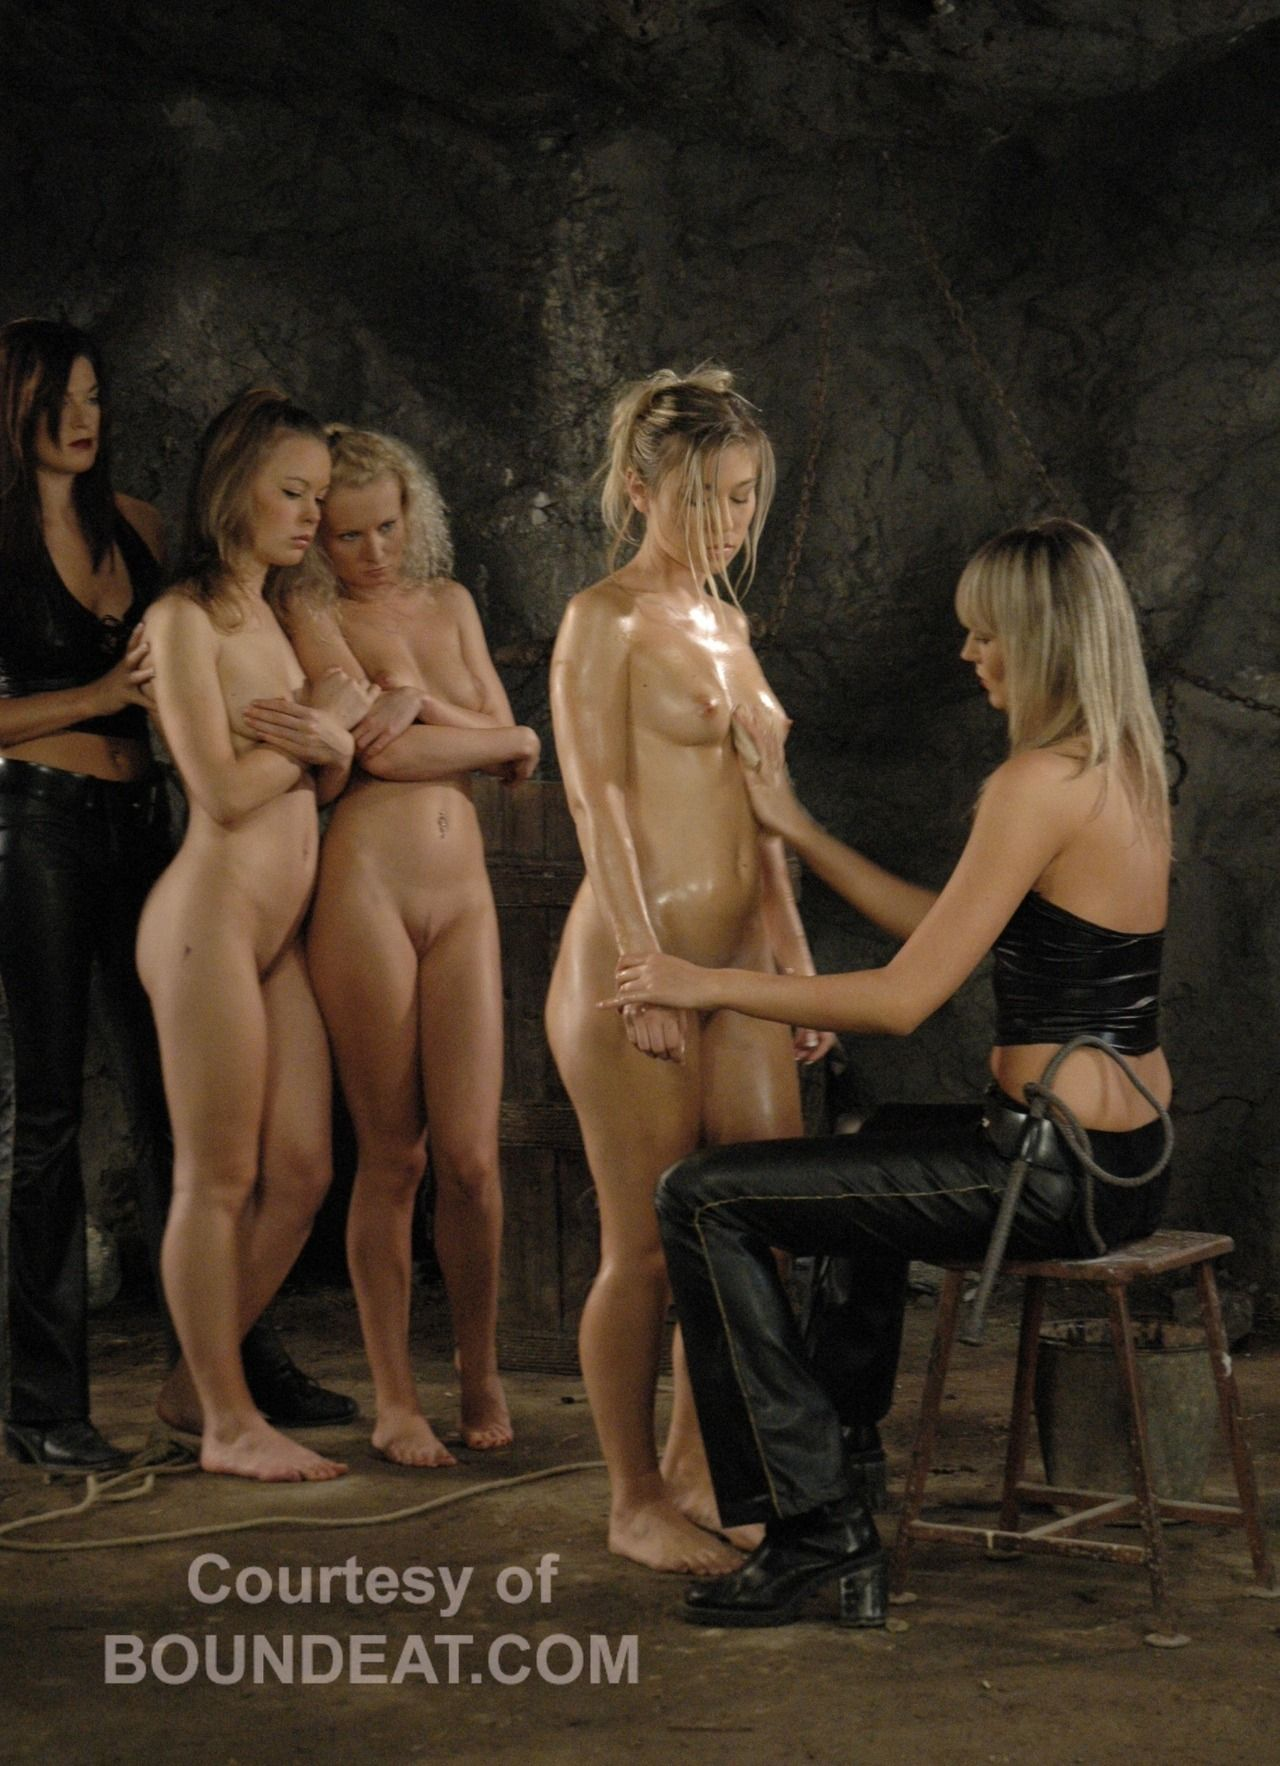 3d sex slave auction photos porncraft movie